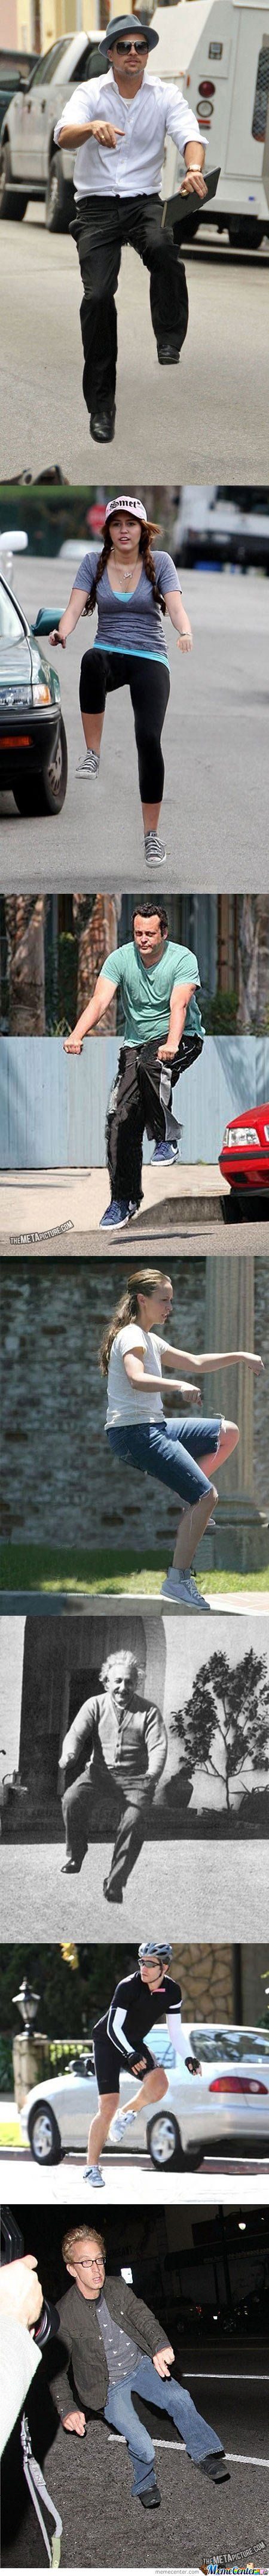 Celebs Without Their Bikes